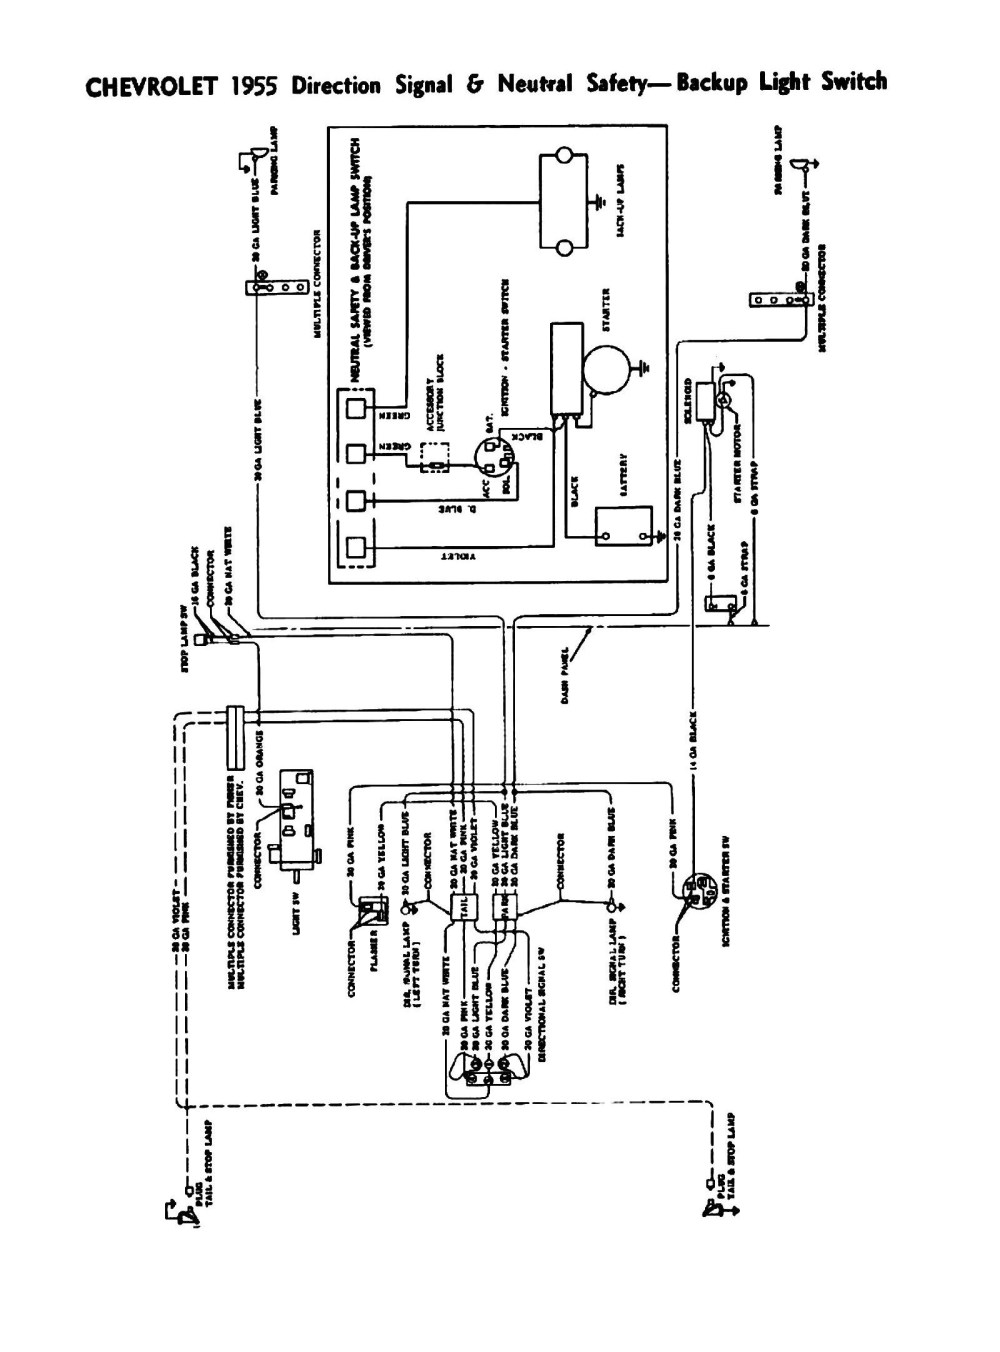 medium resolution of 2001 s10 tail light wiring diagram wiring diagram in addition 57 chevy heater diagram also 1996